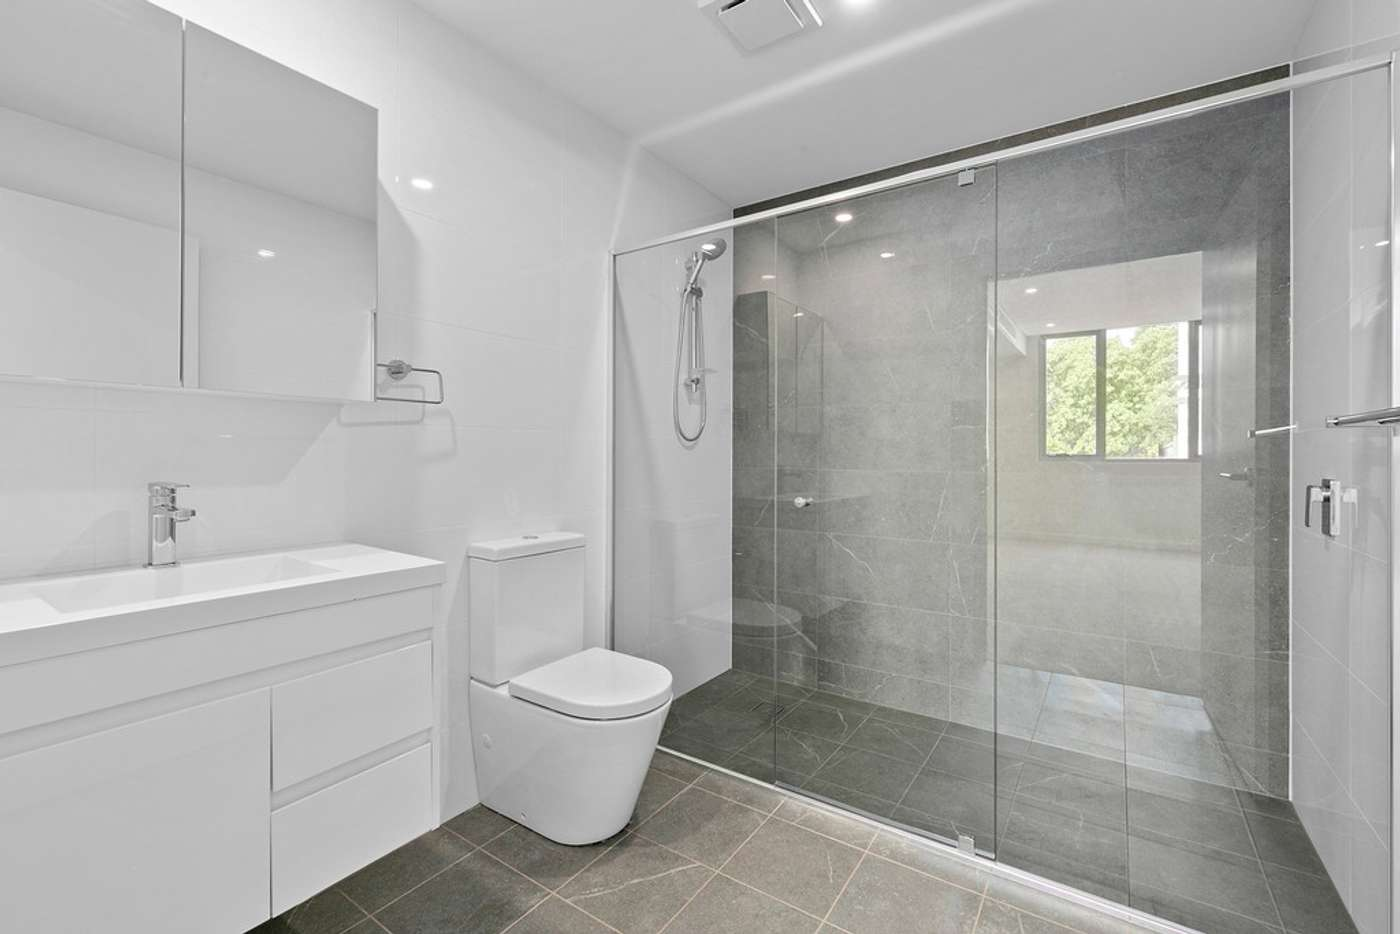 Main view of Homely apartment listing, 202/120-126 Penshurst Street, Willoughby NSW 2068